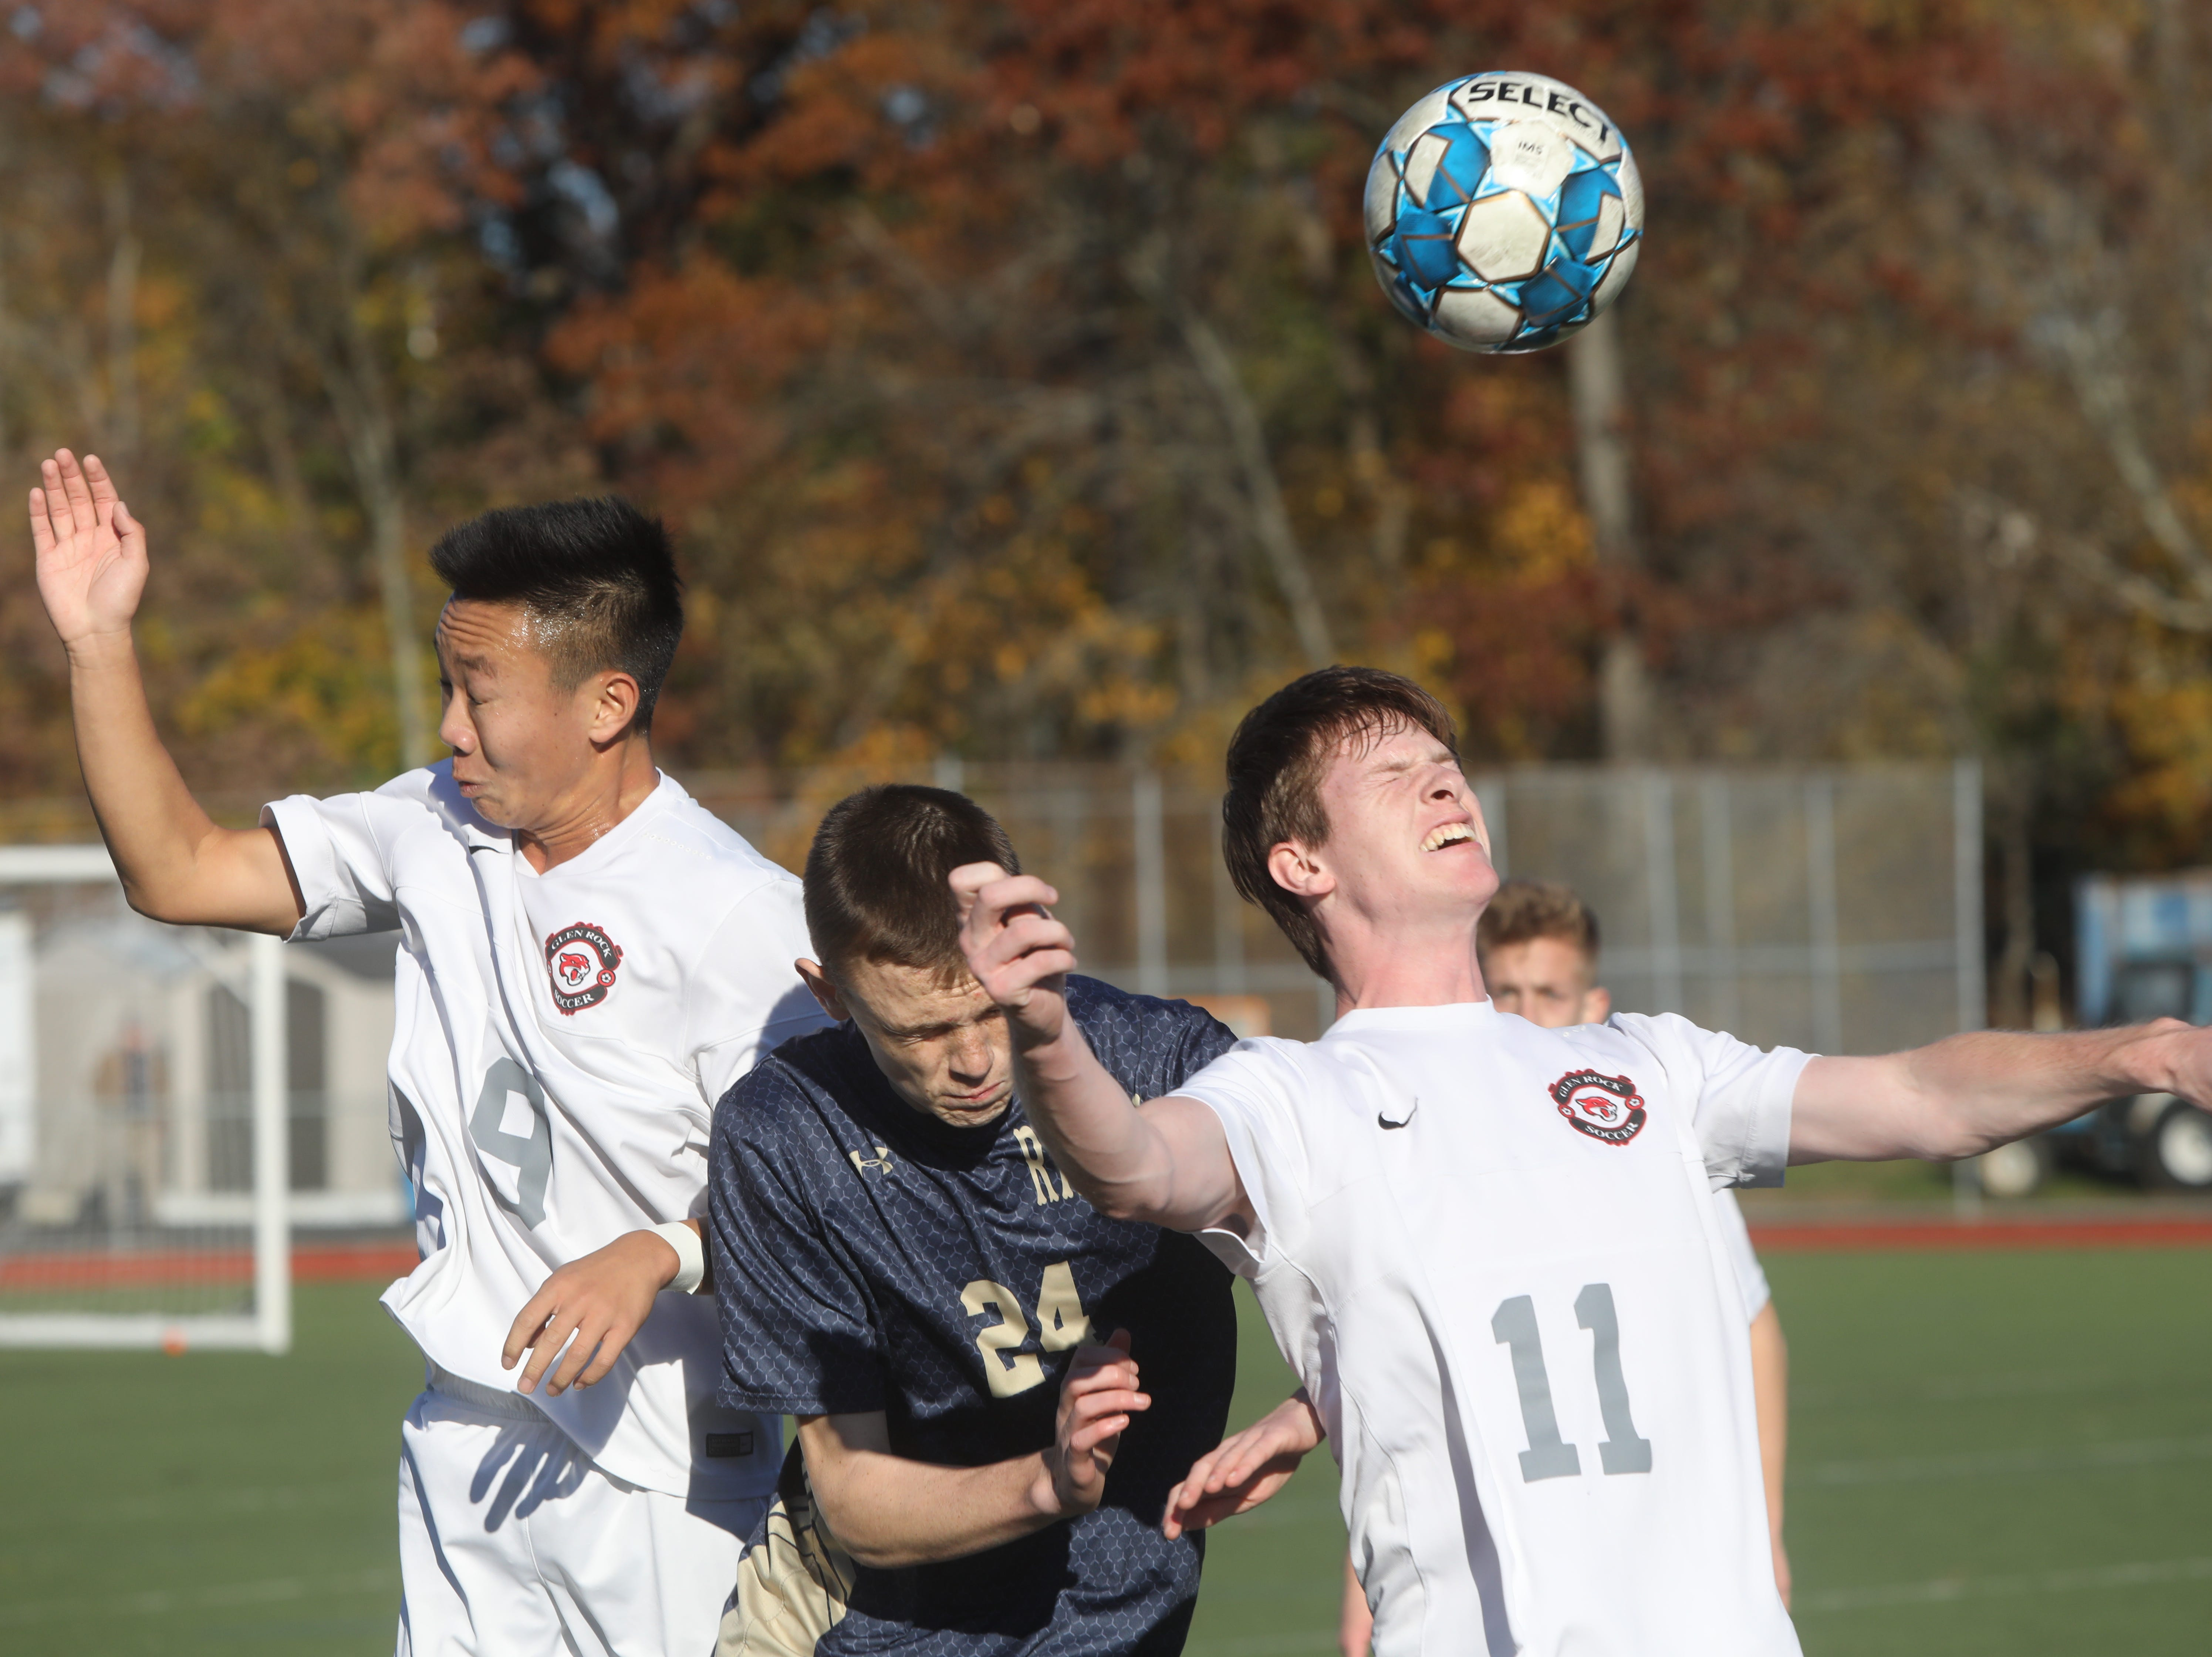 Josh Kim and John Corry of Glen Rock keep the ball from Aidan Hildebrand of Ramsey.